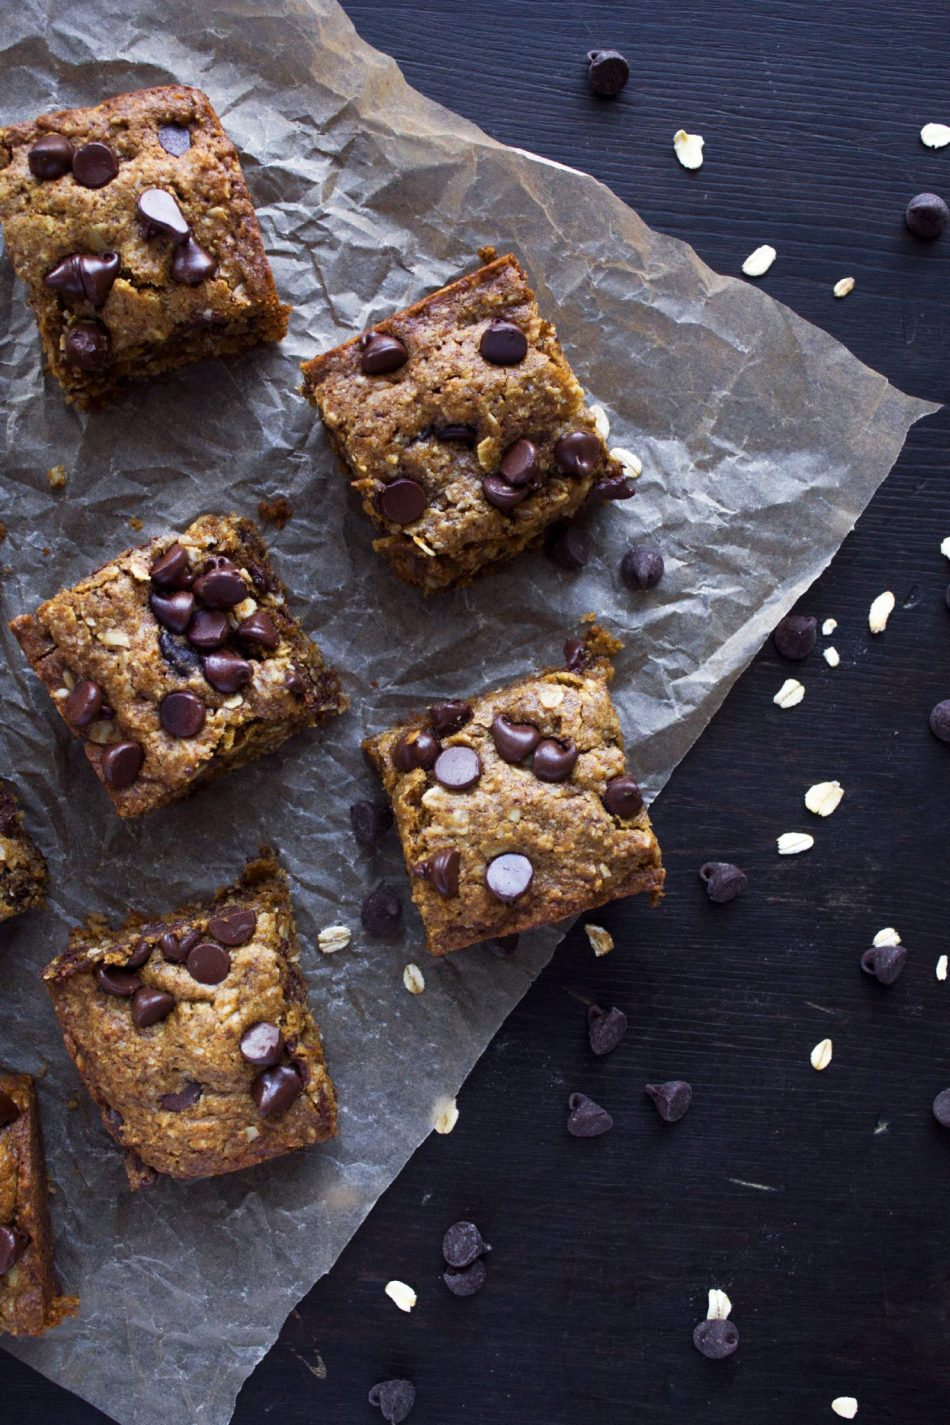 Chocolate Chip Coconut Oatmeal Bars | Free of Gluten, Dairy, and Refined Sugar